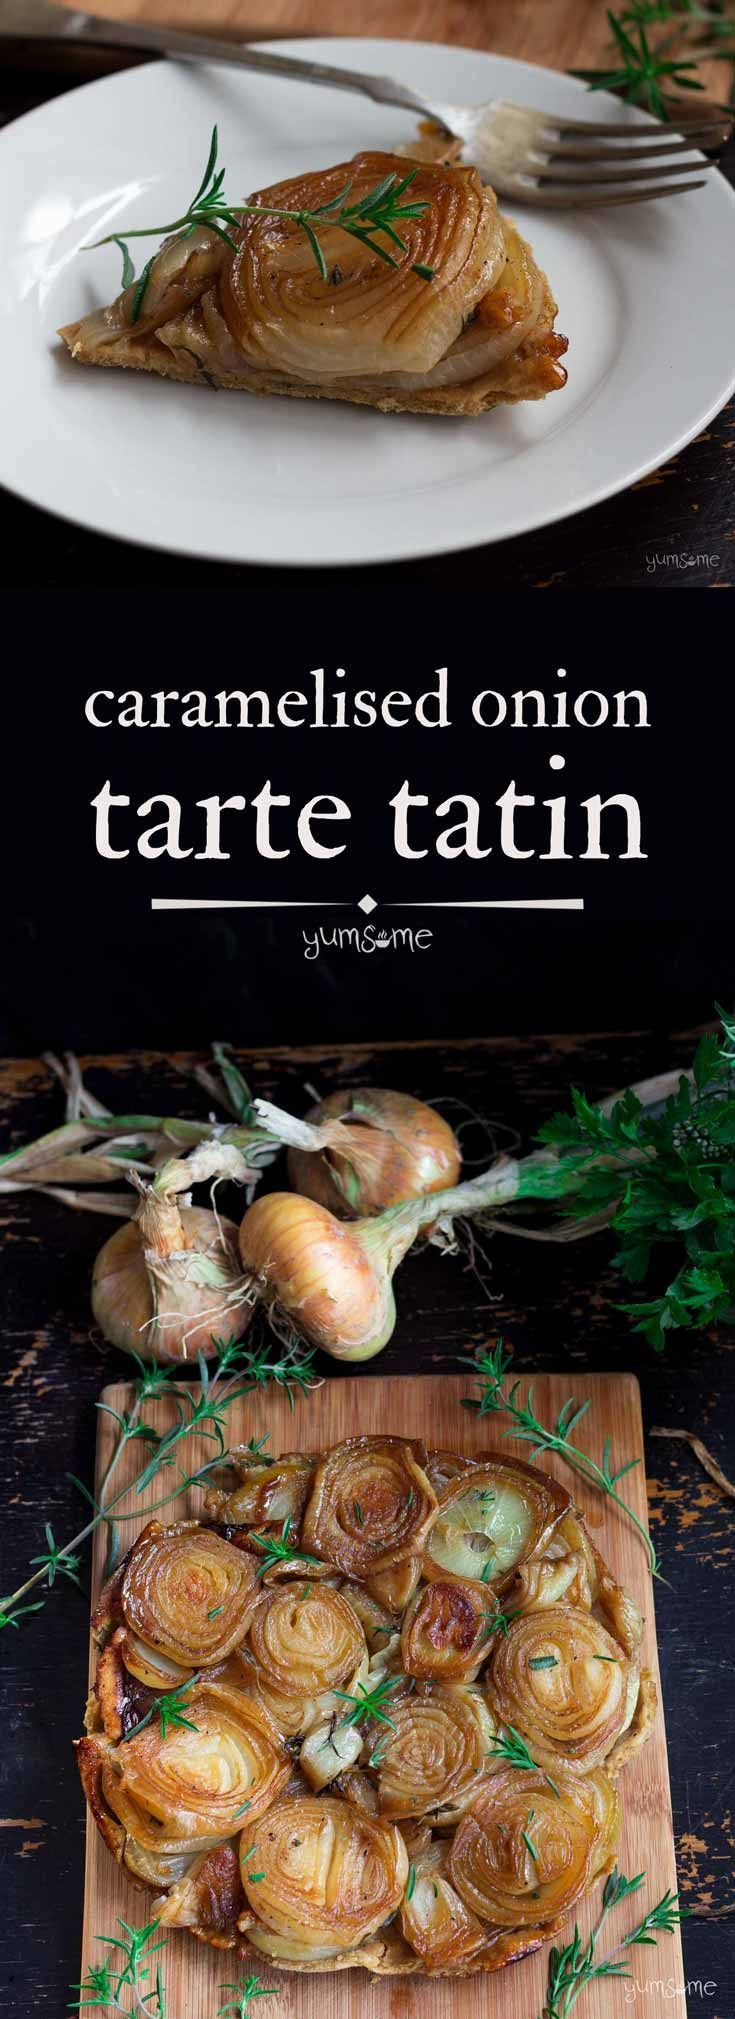 Sweet #caramelised #onions nestling inside a crisp #cheesy and herby wholemeal #pastry crust make this #vegan #tartetatin a fab summertime #supper or perfect #picnic #lunch! | yumsome.com via @yums0me